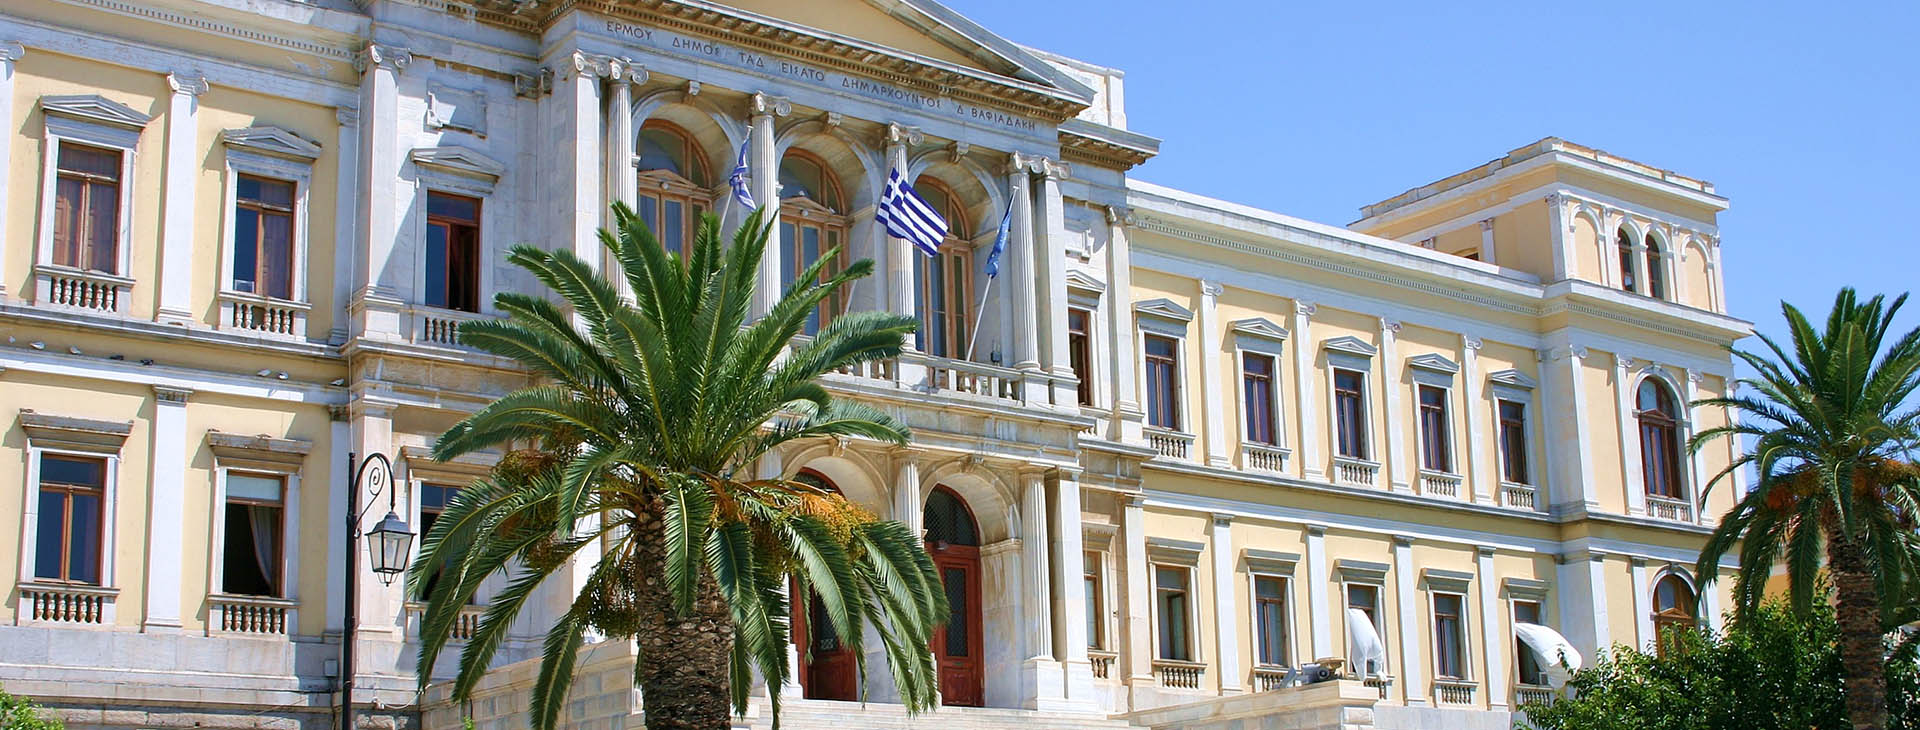 City Hall, Syros island